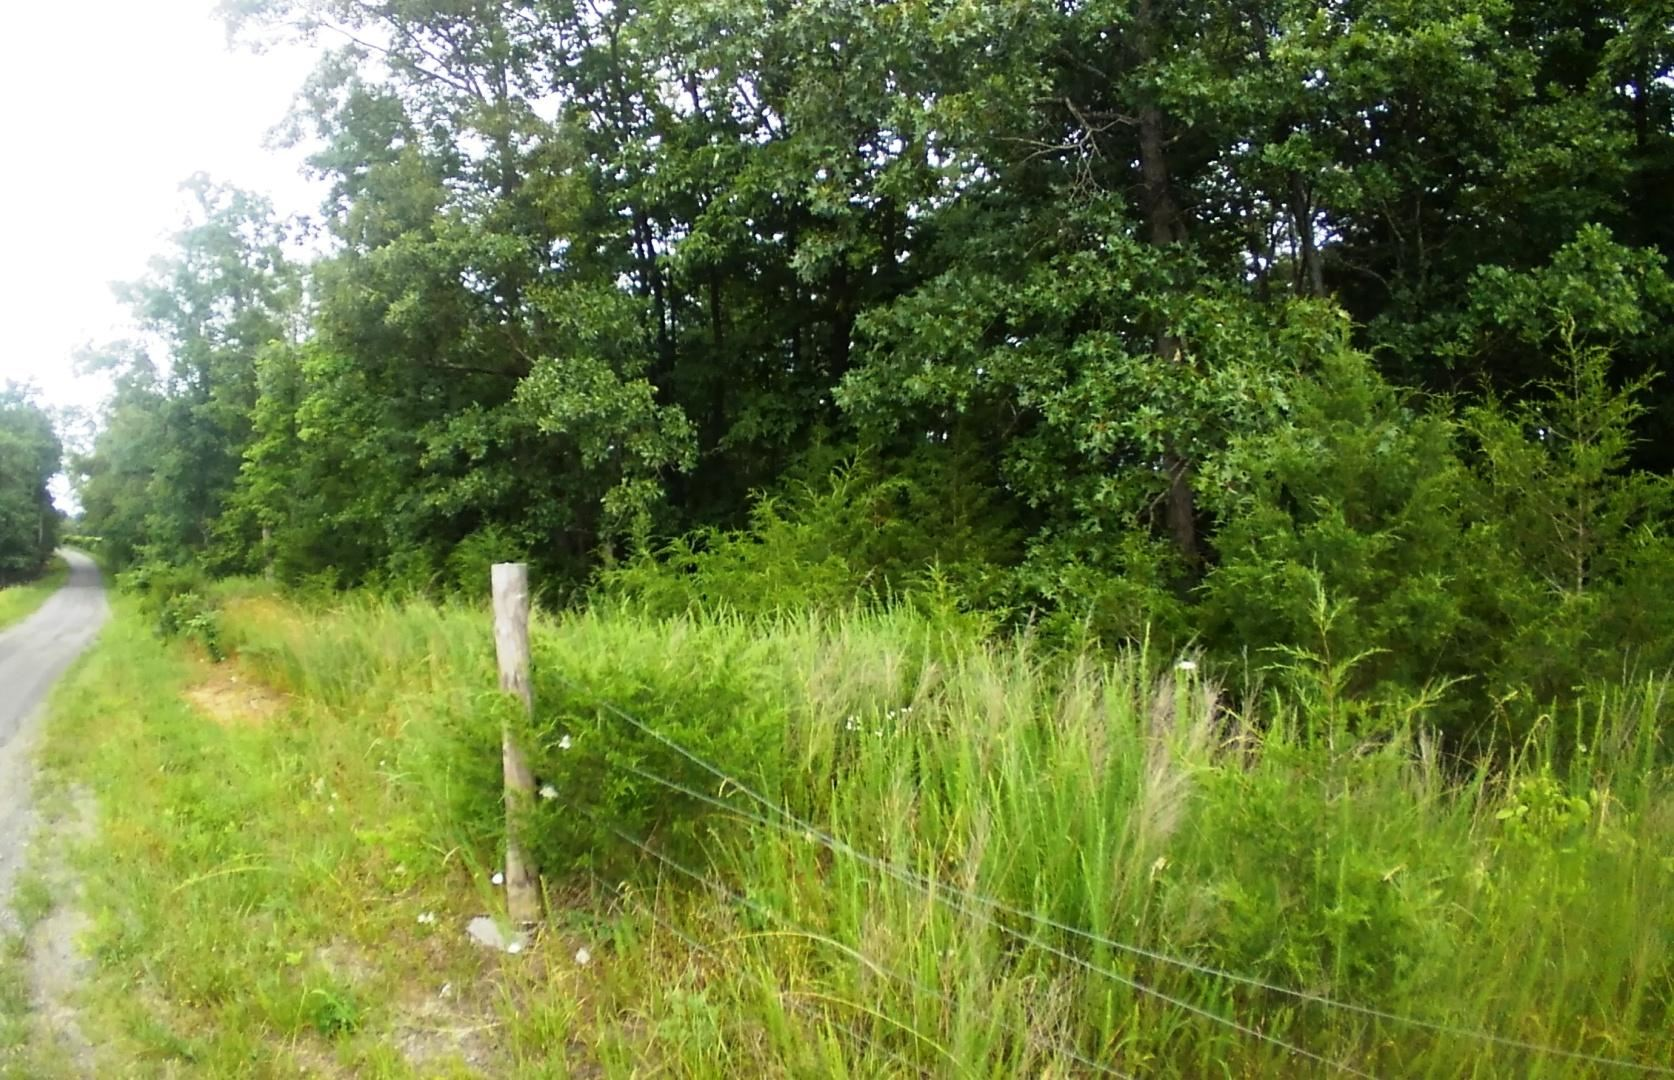 Photo of Lot 14 Smelcer Road, Mohawk, TN 37810 (MLS # 267378)